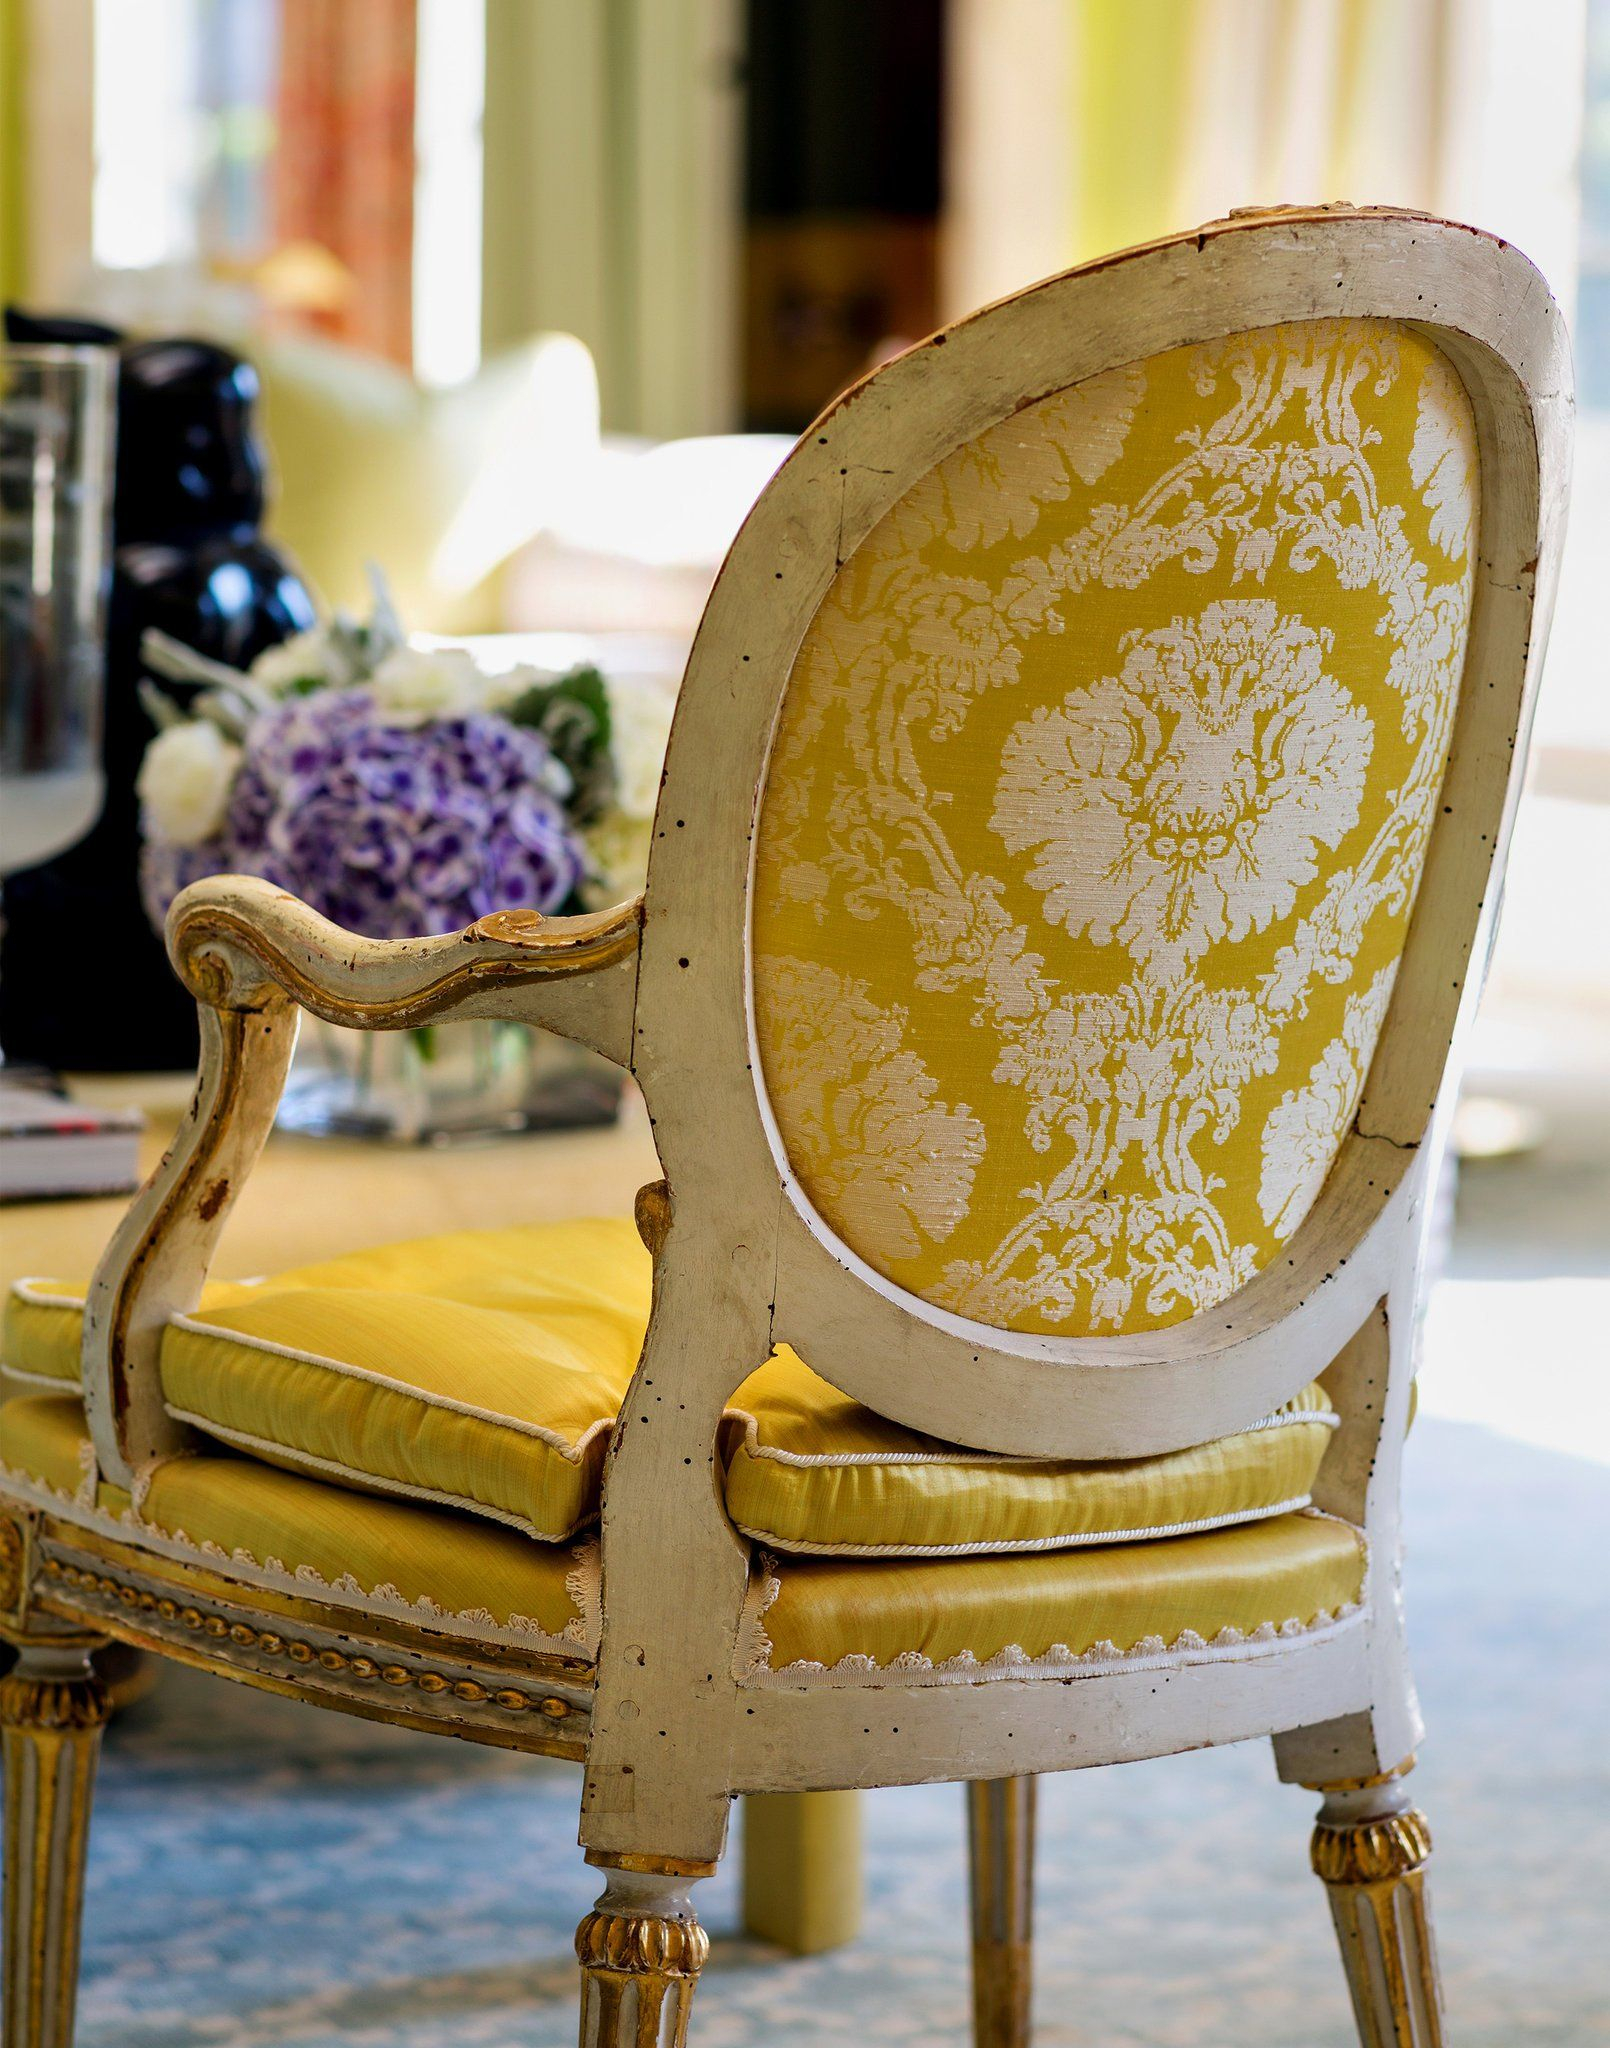 Chapter One: Chintz | Mario Buatta, Yellow Chair, Painted With Regard To Chintz Sofas And Chairs (View 12 of 15)